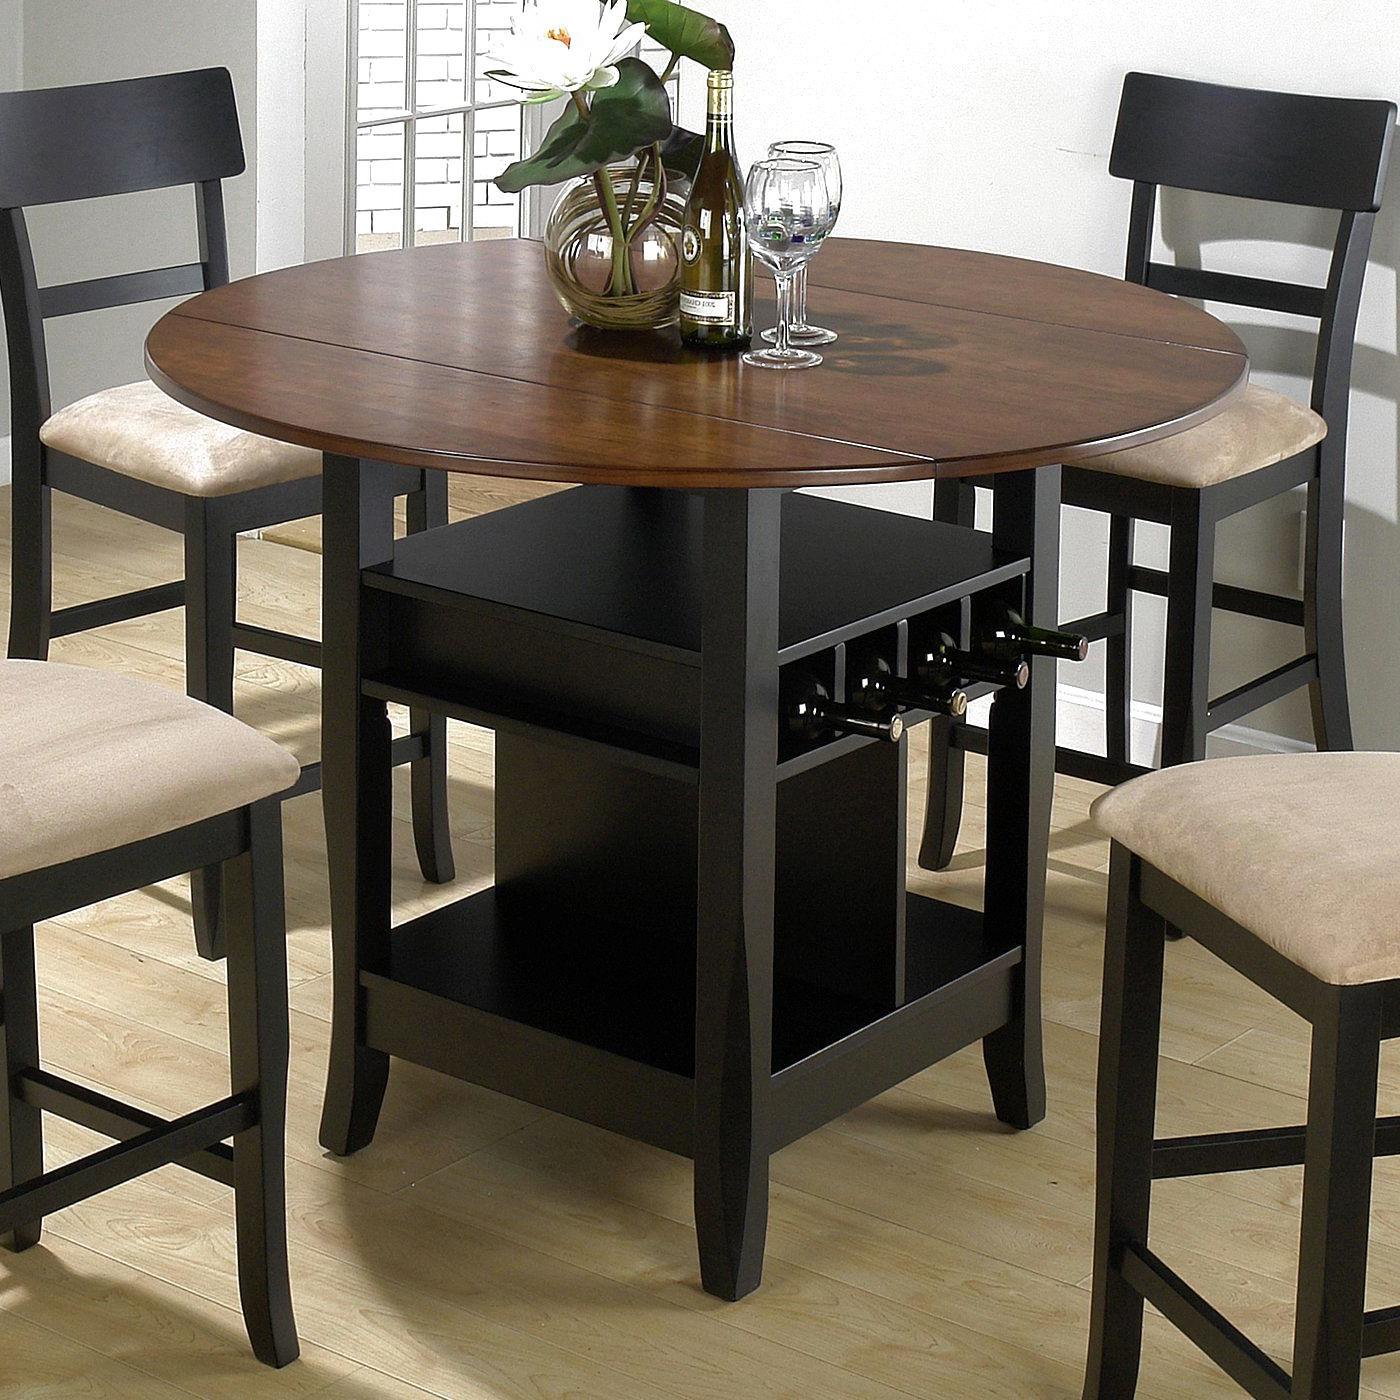 Table Designs (View 22 of 25)